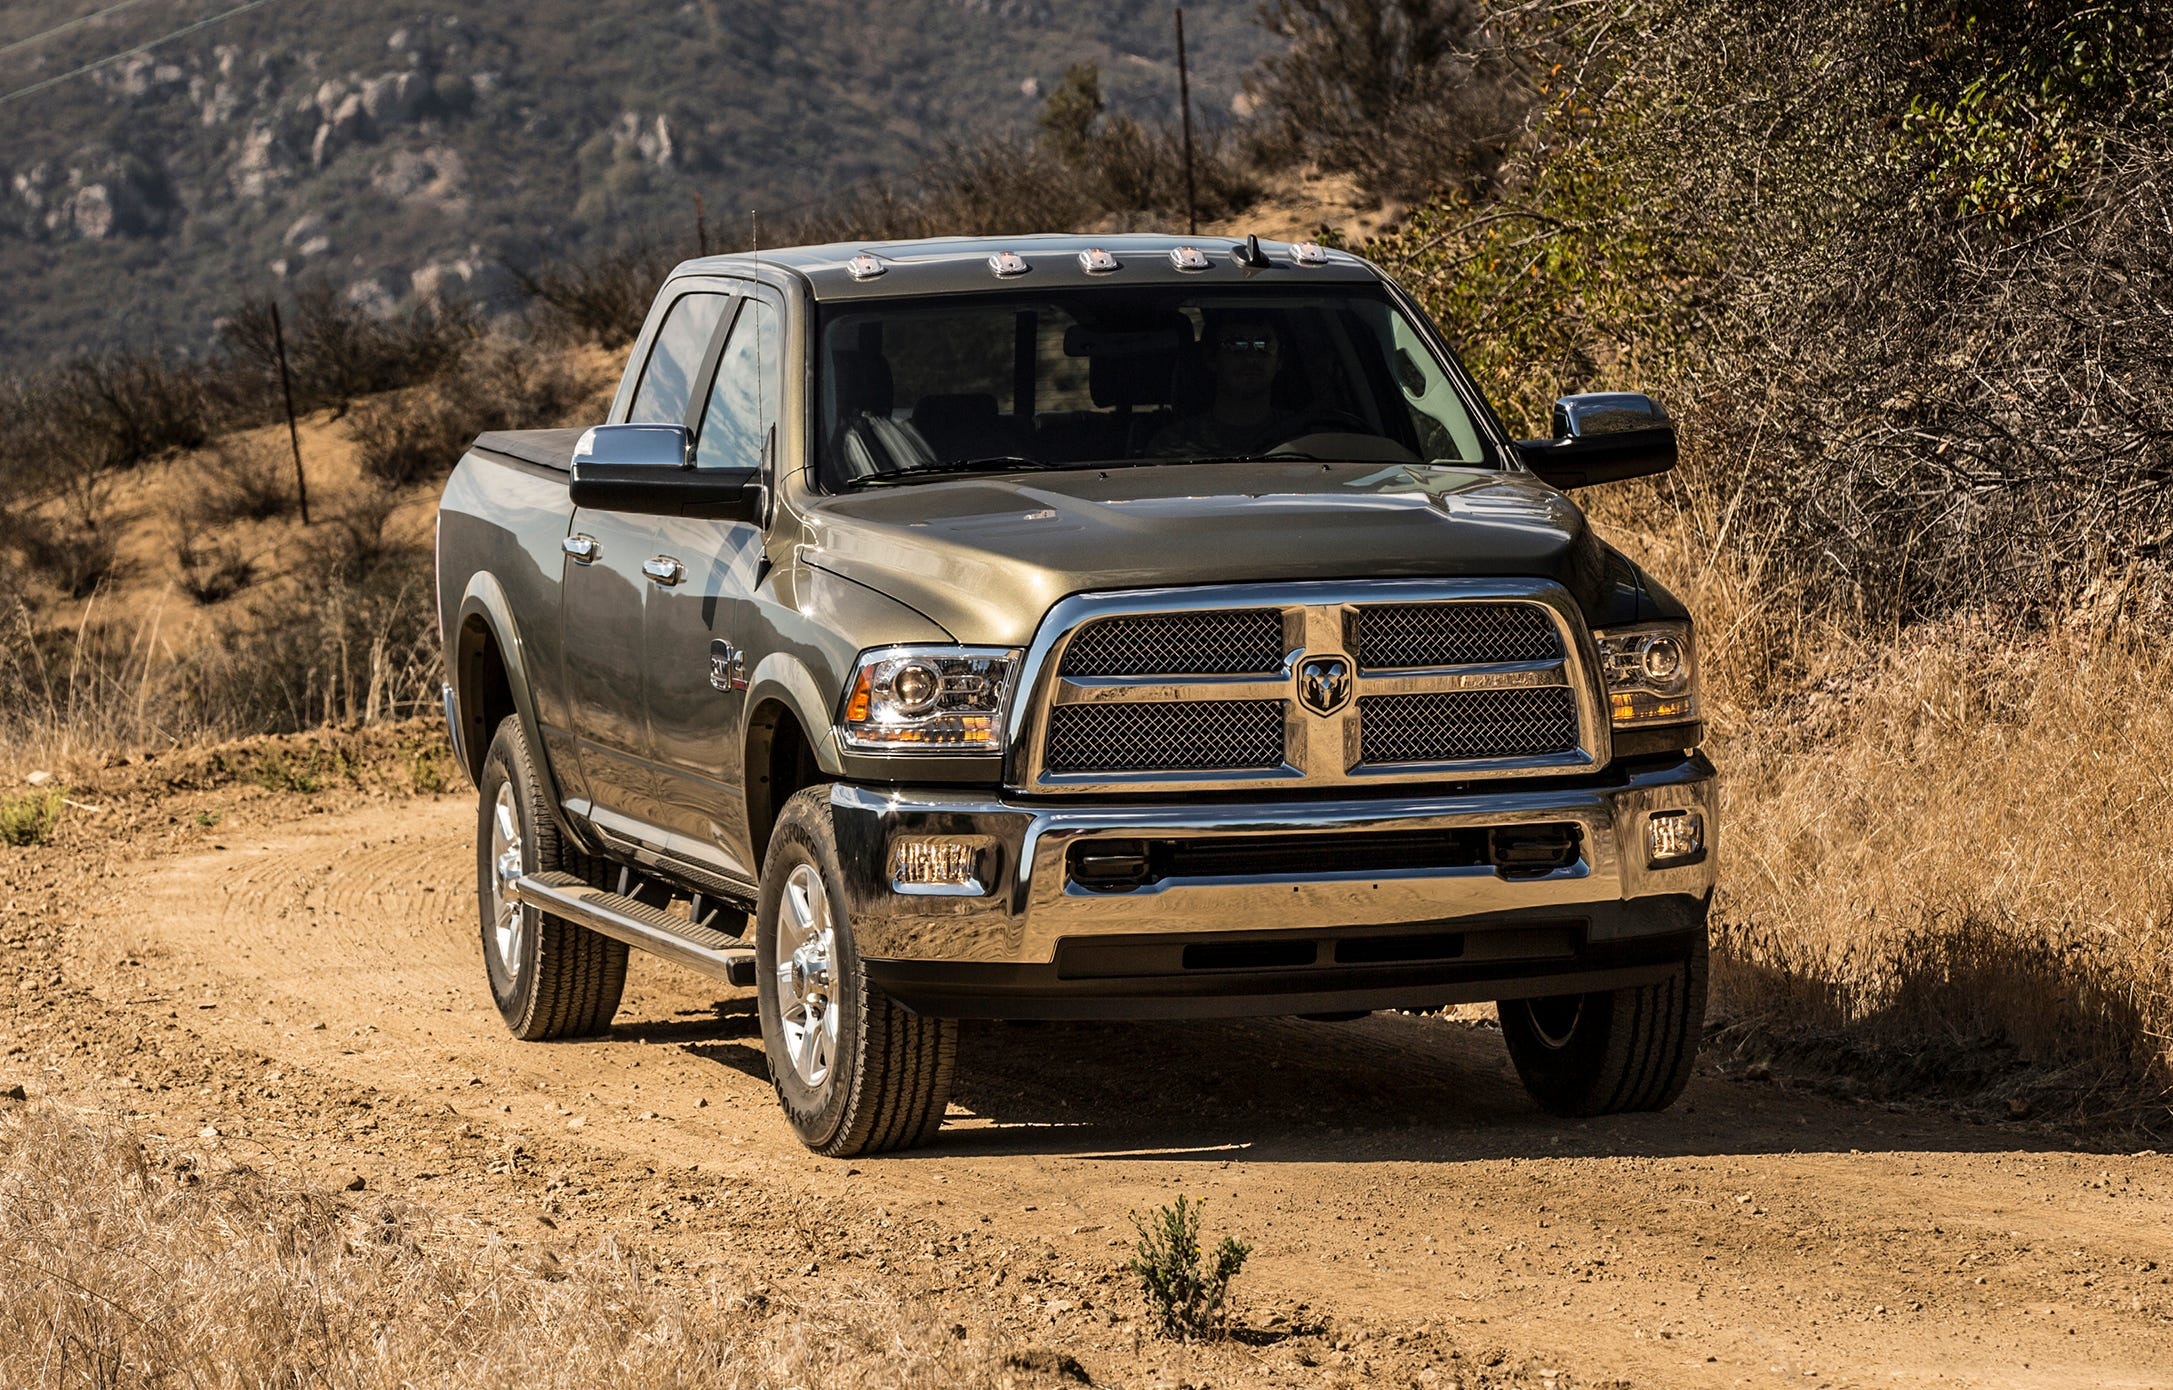 Fiat Chrysler is recalling over 660,000 heavy-duty trucks worldwide, including the 2016 Ram 2500 Laramie Longhorn Crew Cab 4/4 Heavy Duty, shown, because a loose nut can cause a loss of steering control.